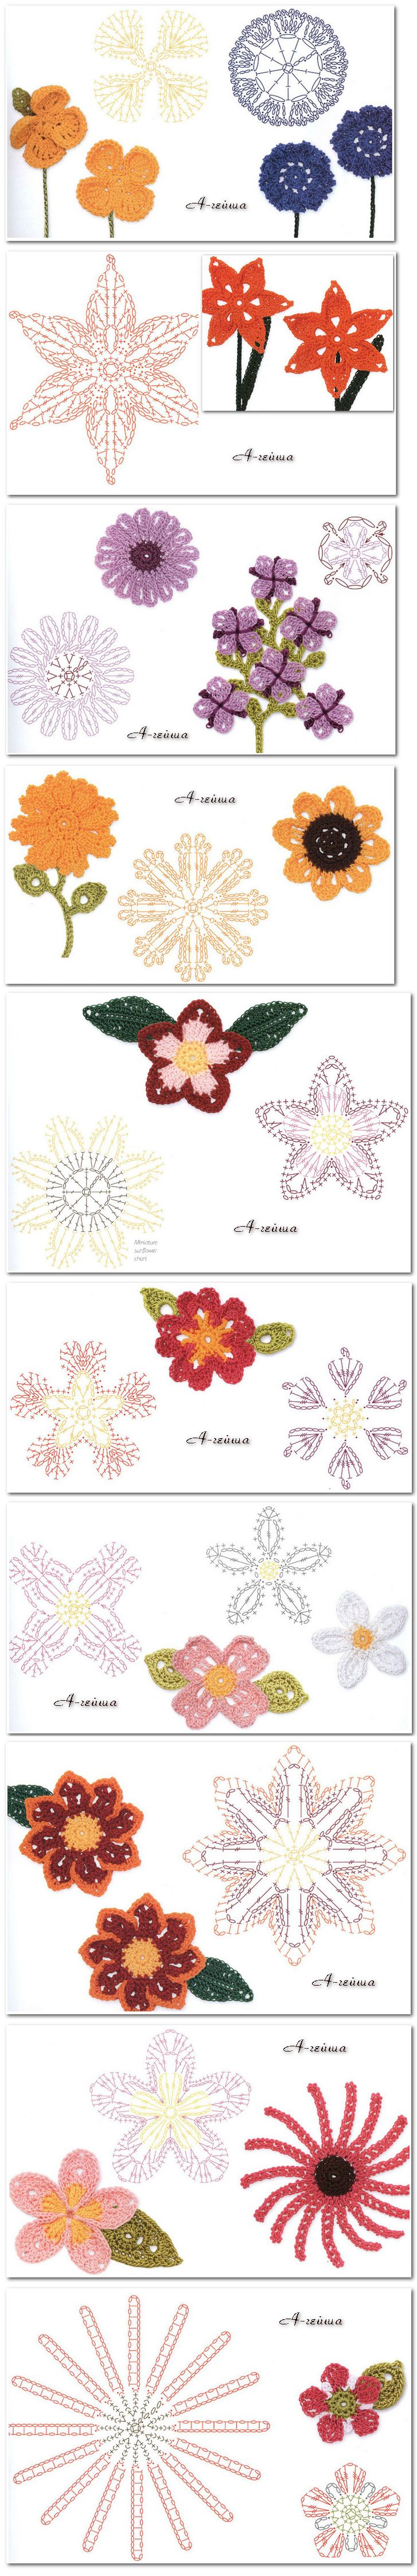 crochet flowers and their diagrams